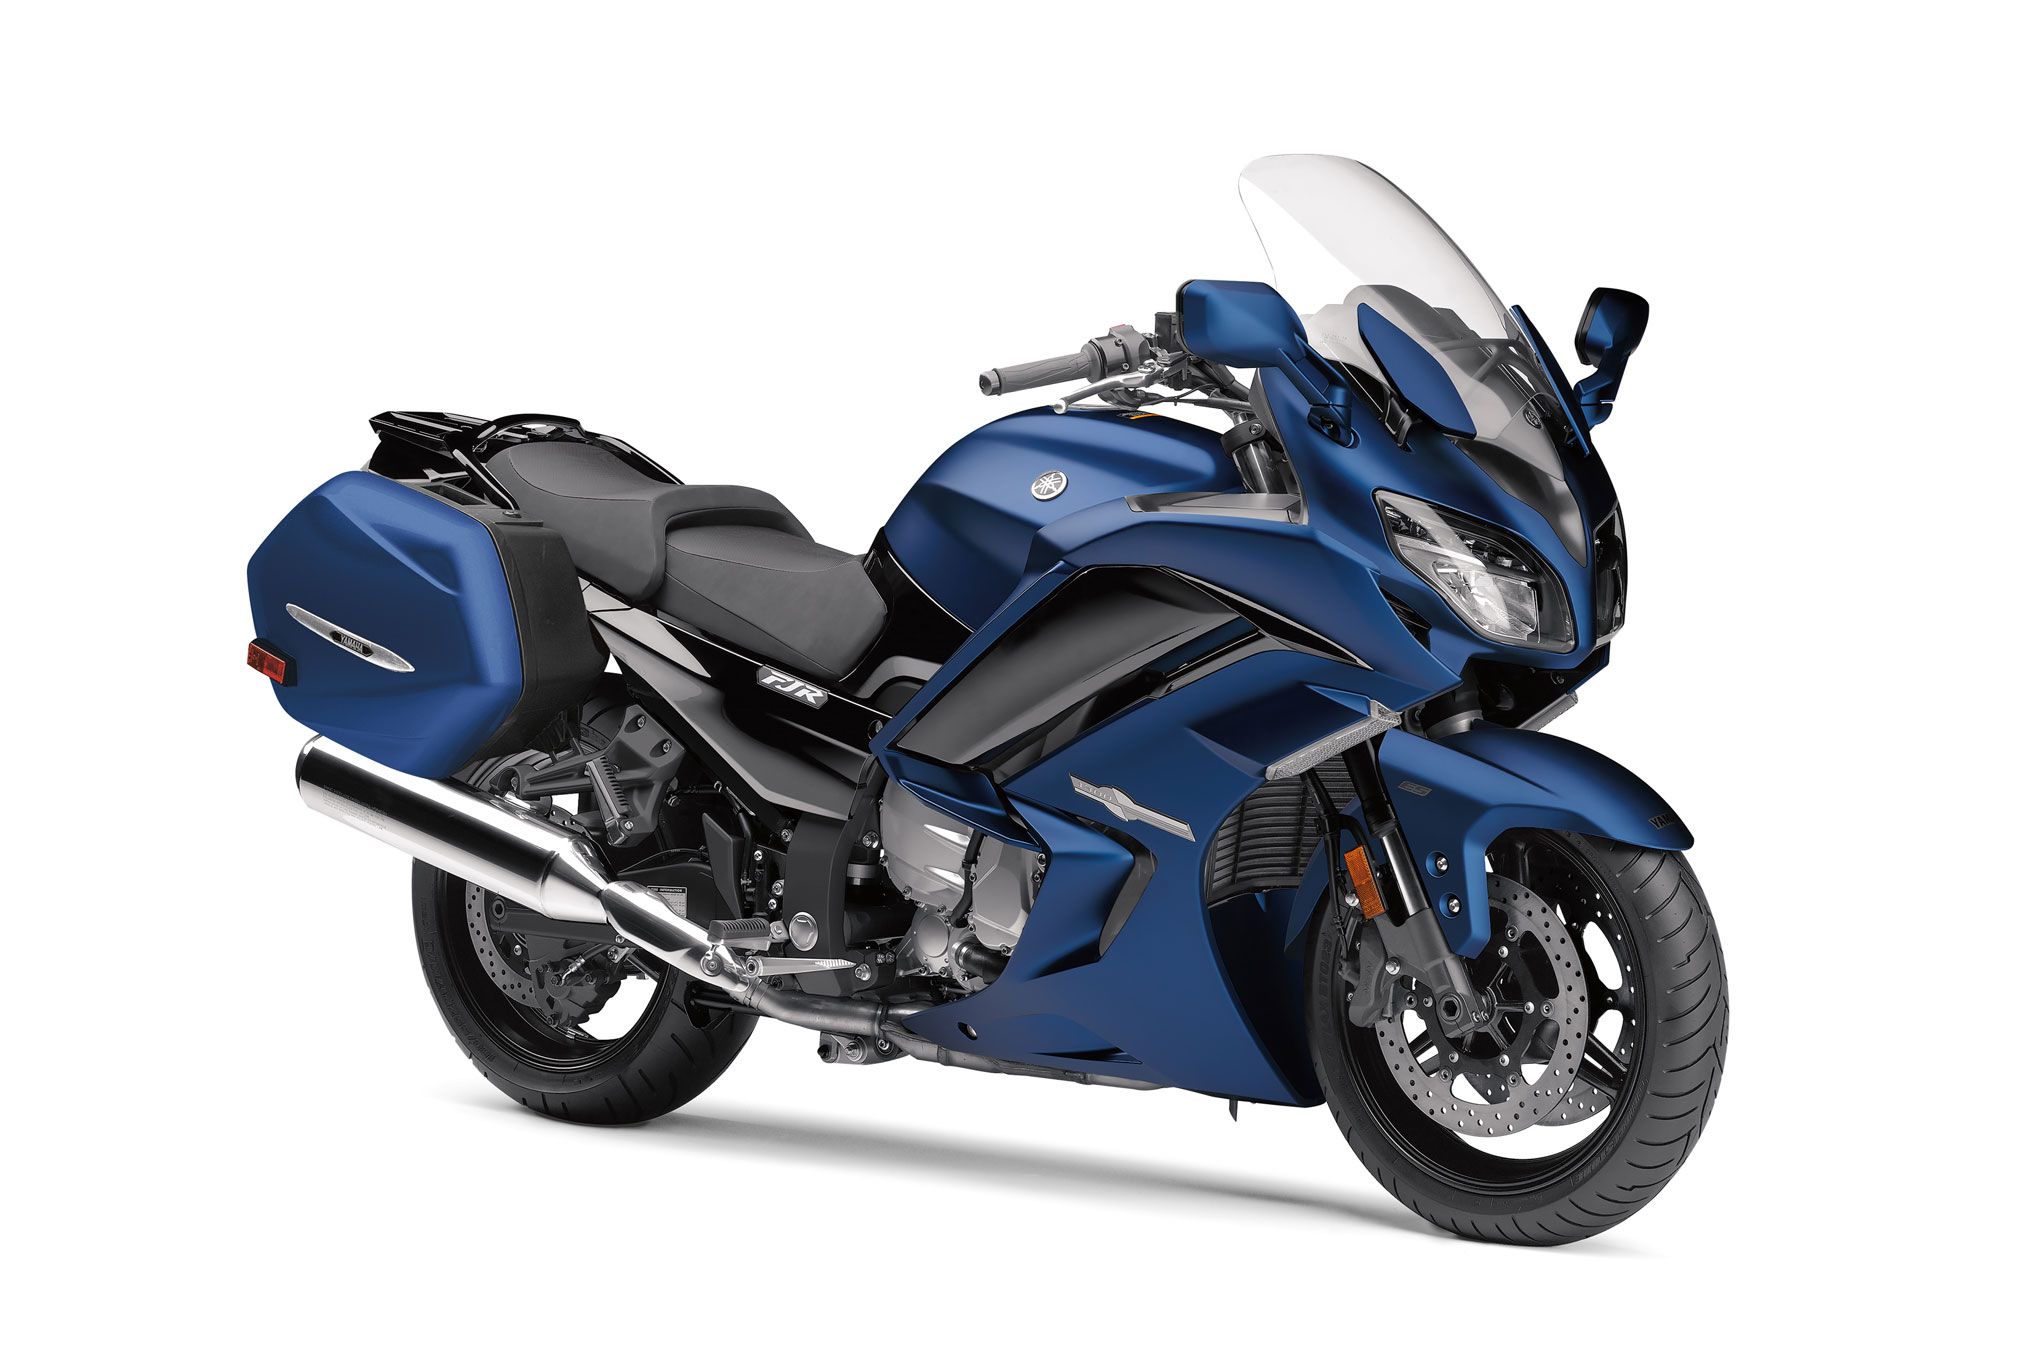 2018 yamaha fjr1300es review totalmotorcycle for Yamaha sport bikes models